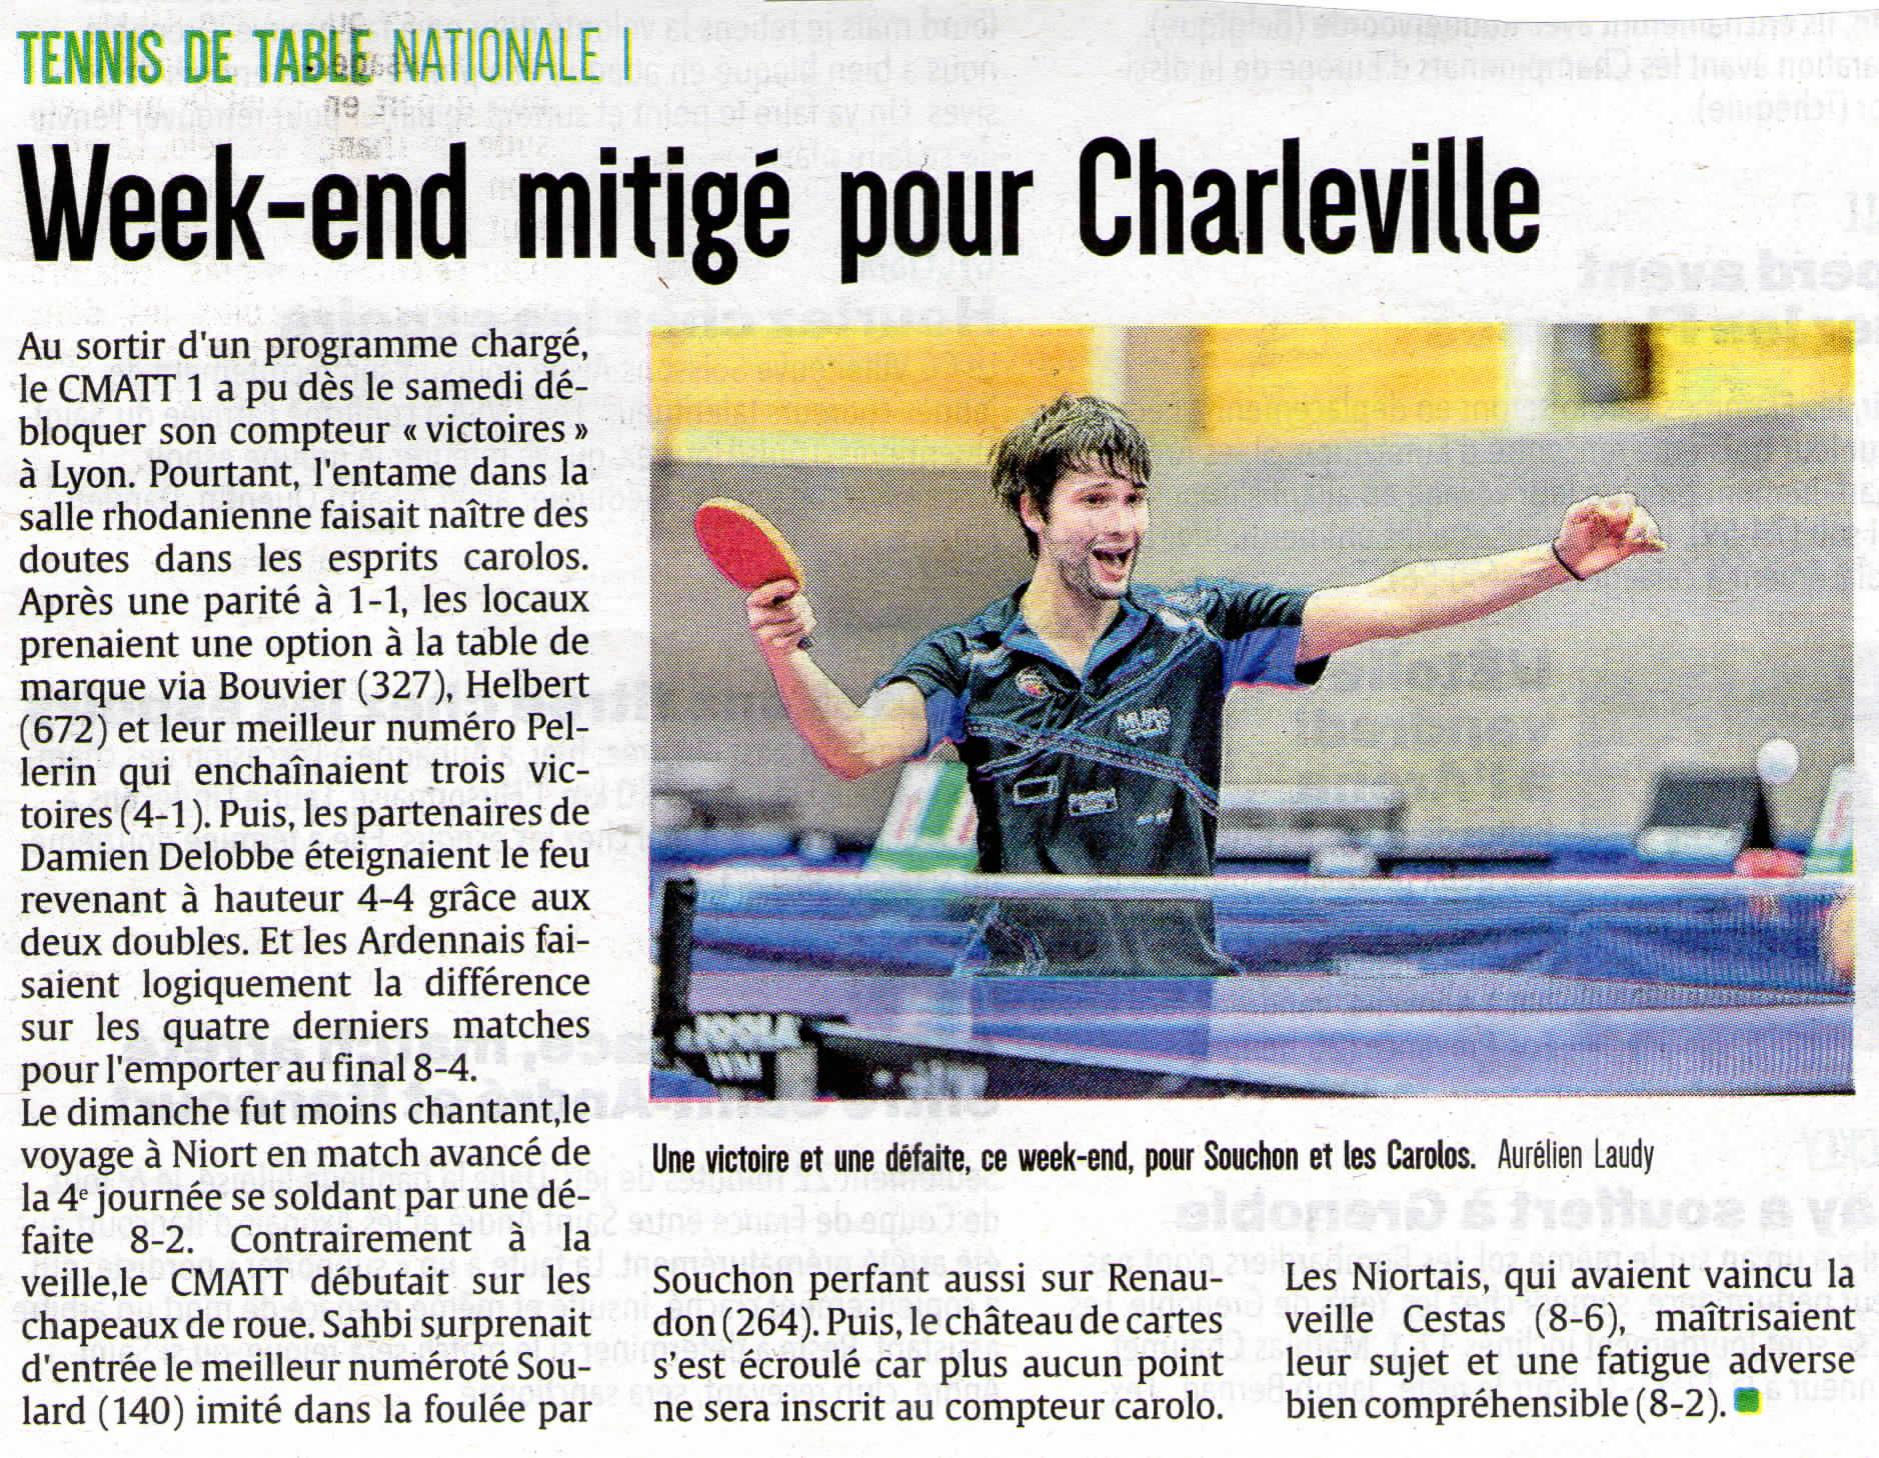 data/2017/multimedia/presse/10/Week-end mitigé pour Charleville.jpg